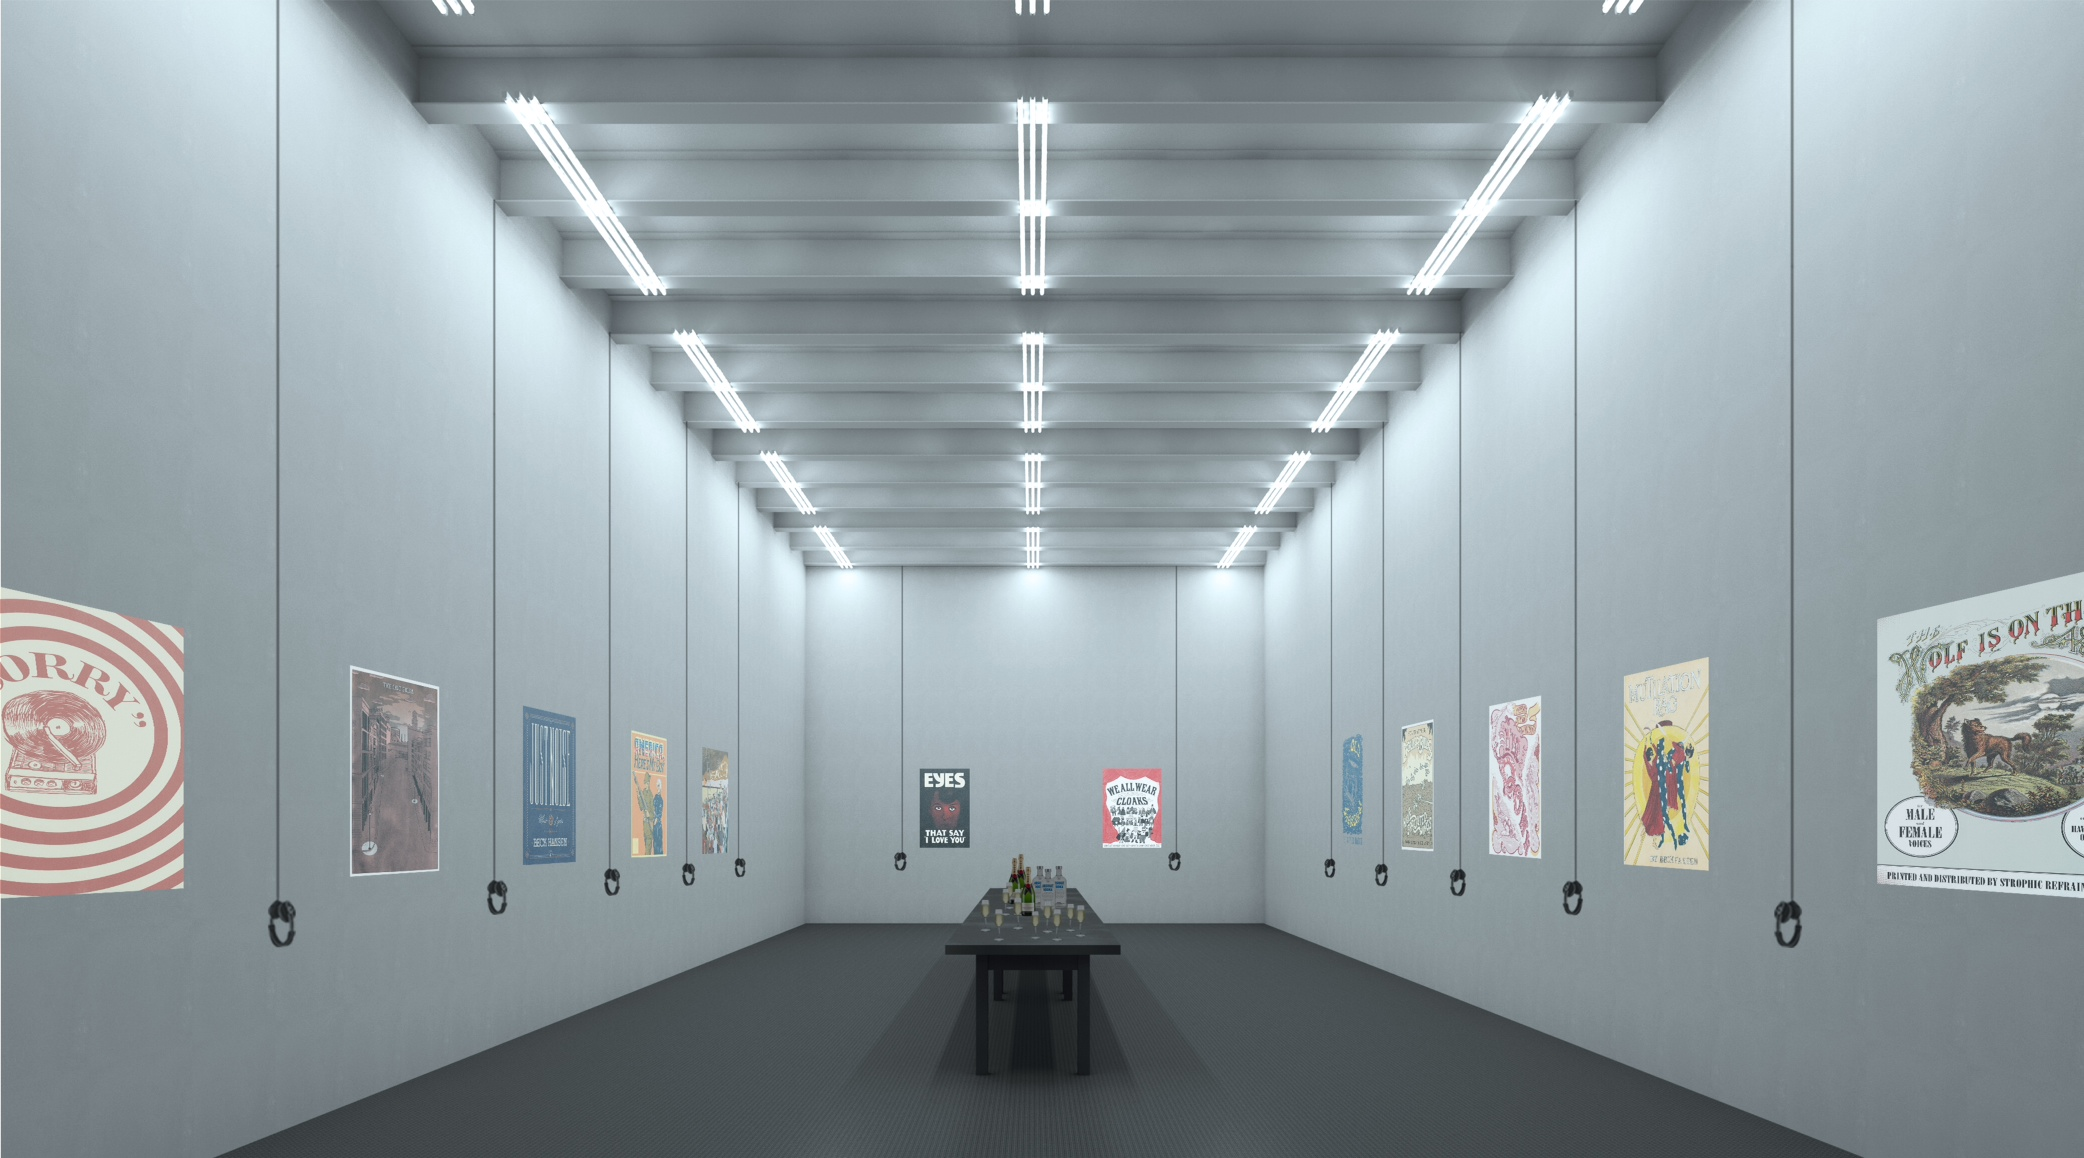 Virtual rendering of Whitebox Art Center space for private event